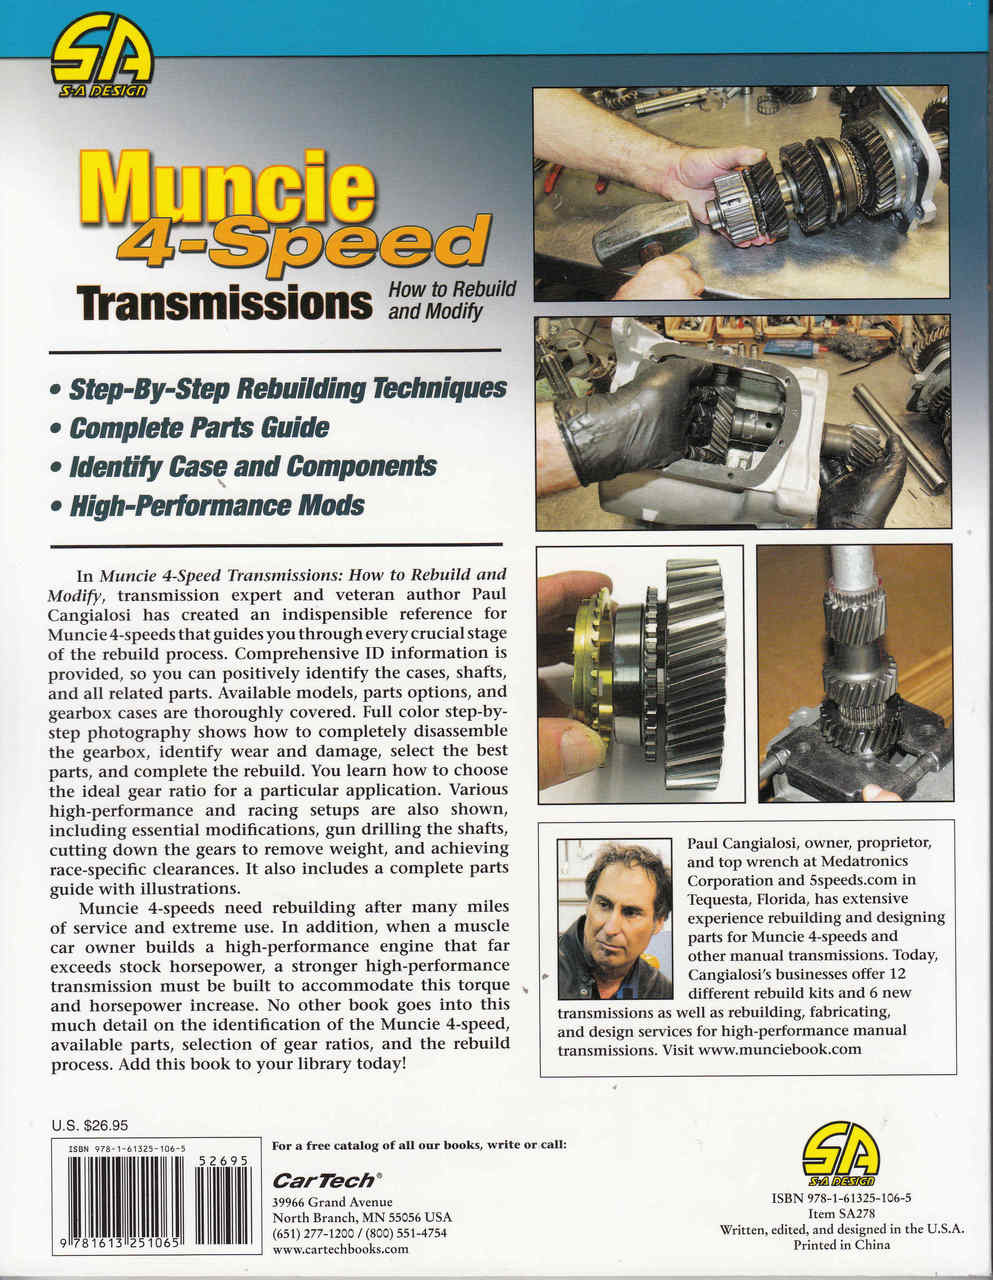 Muncie 4 Speed Transmissions - How to Rebuild and Modify